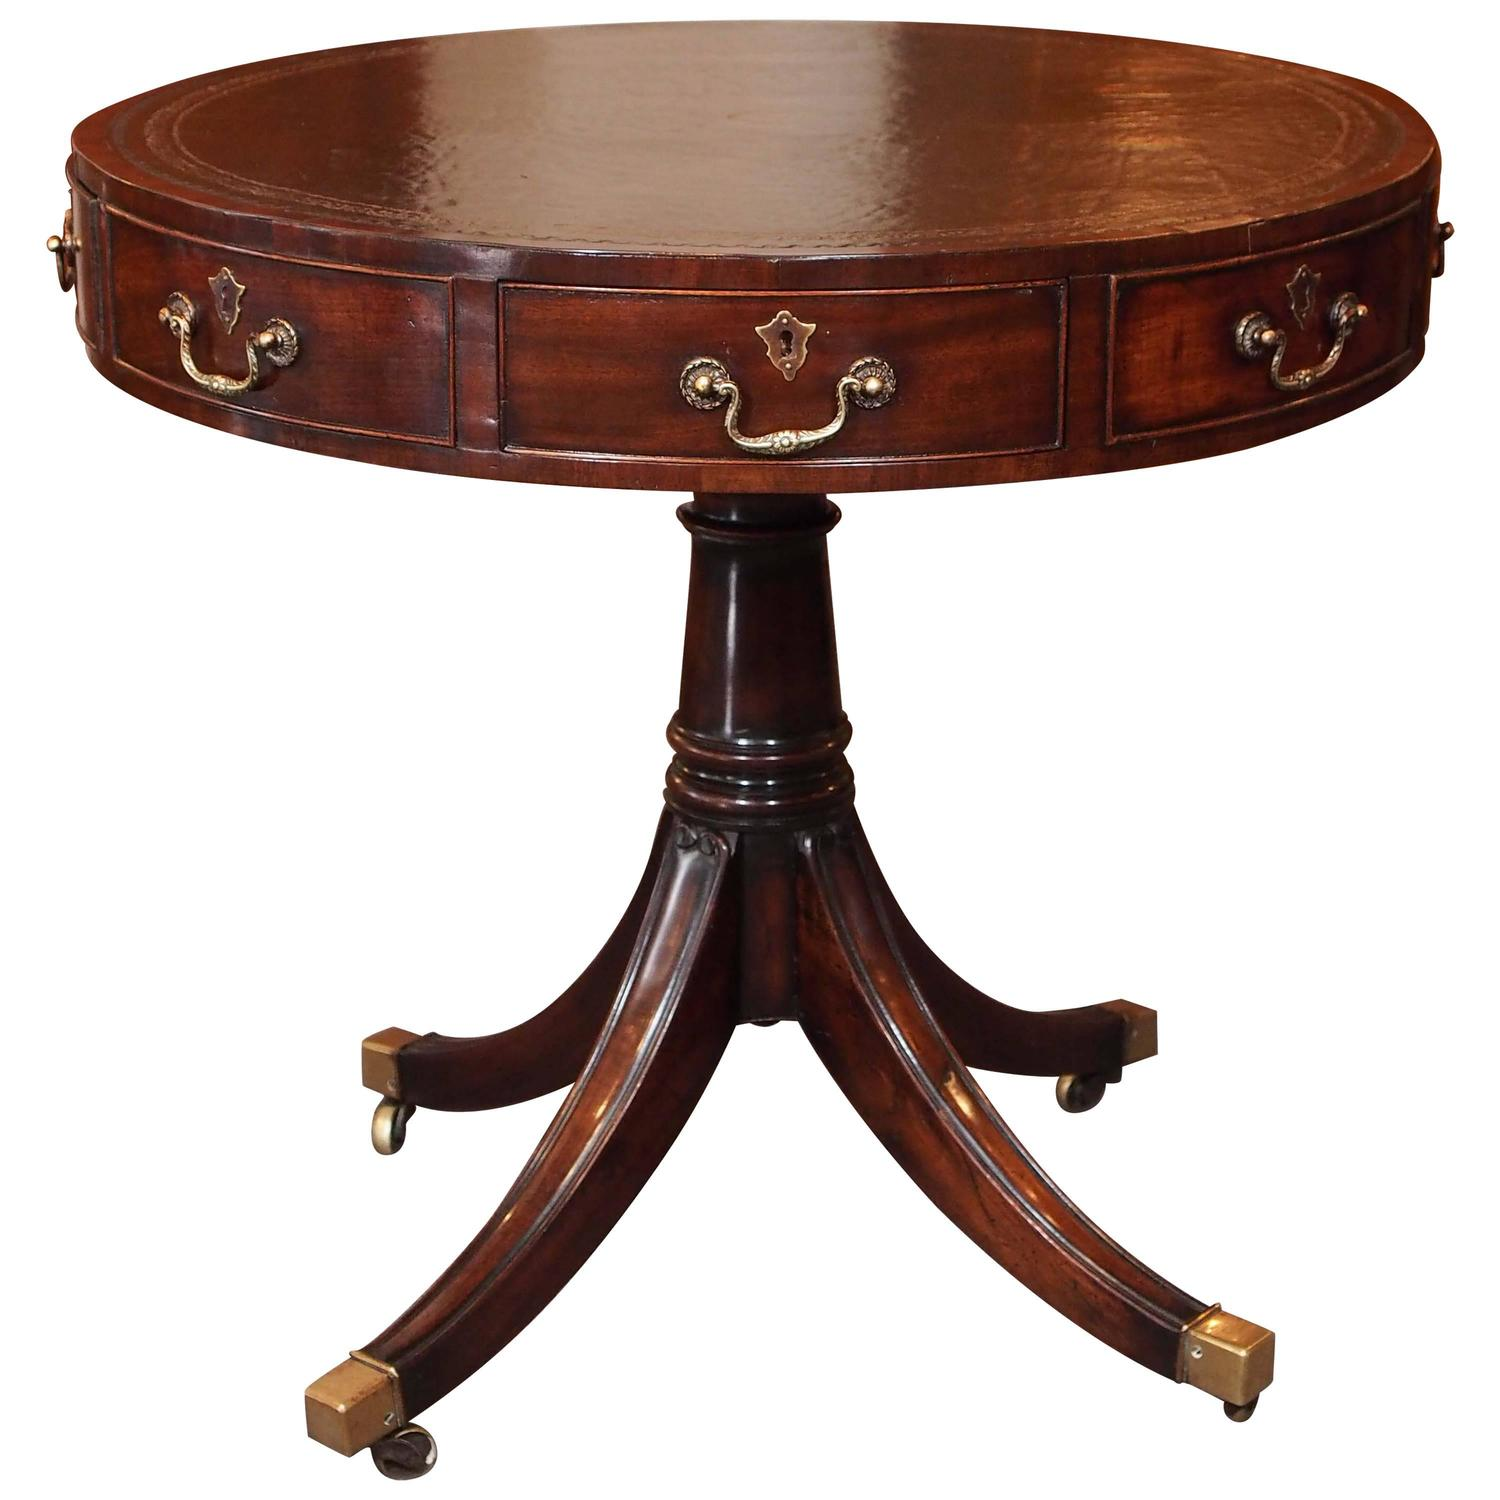 places to rent tables and chairs nursing chair australia antique scottish mahogany leather top table at 1stdibs